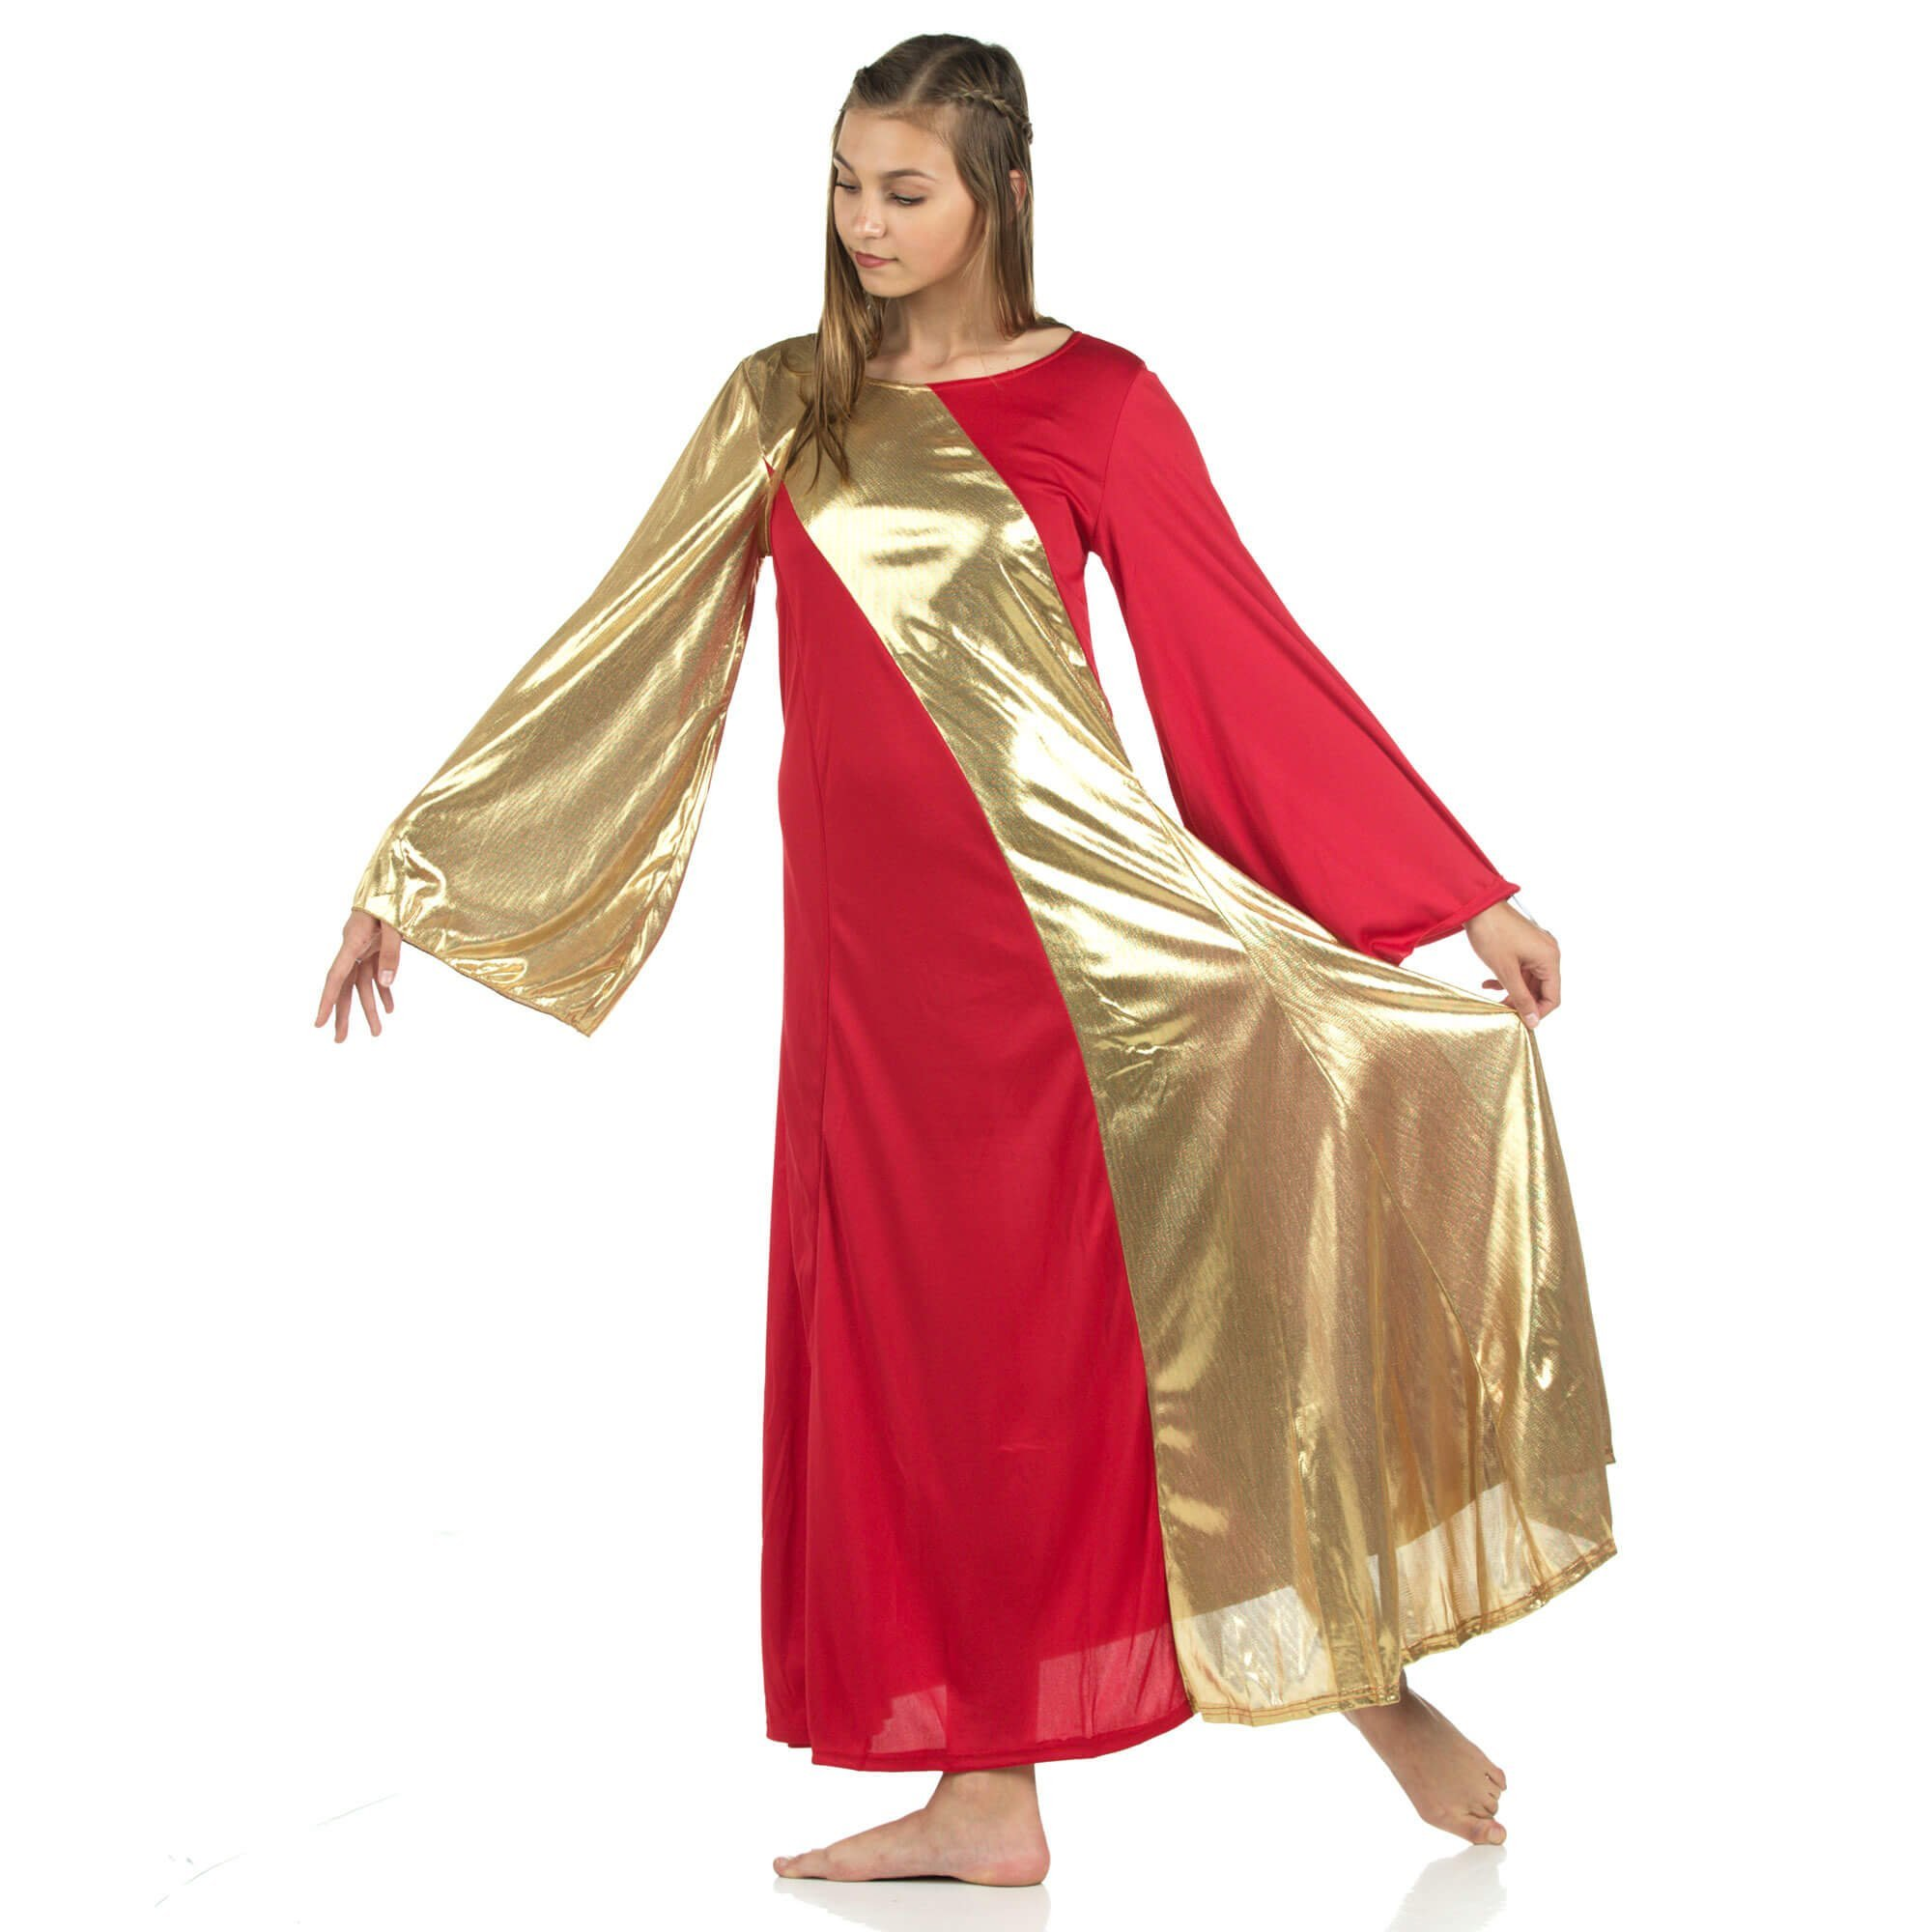 Danzcue Asymmetrical Scarlet-Gold Bell Sleeve Dress